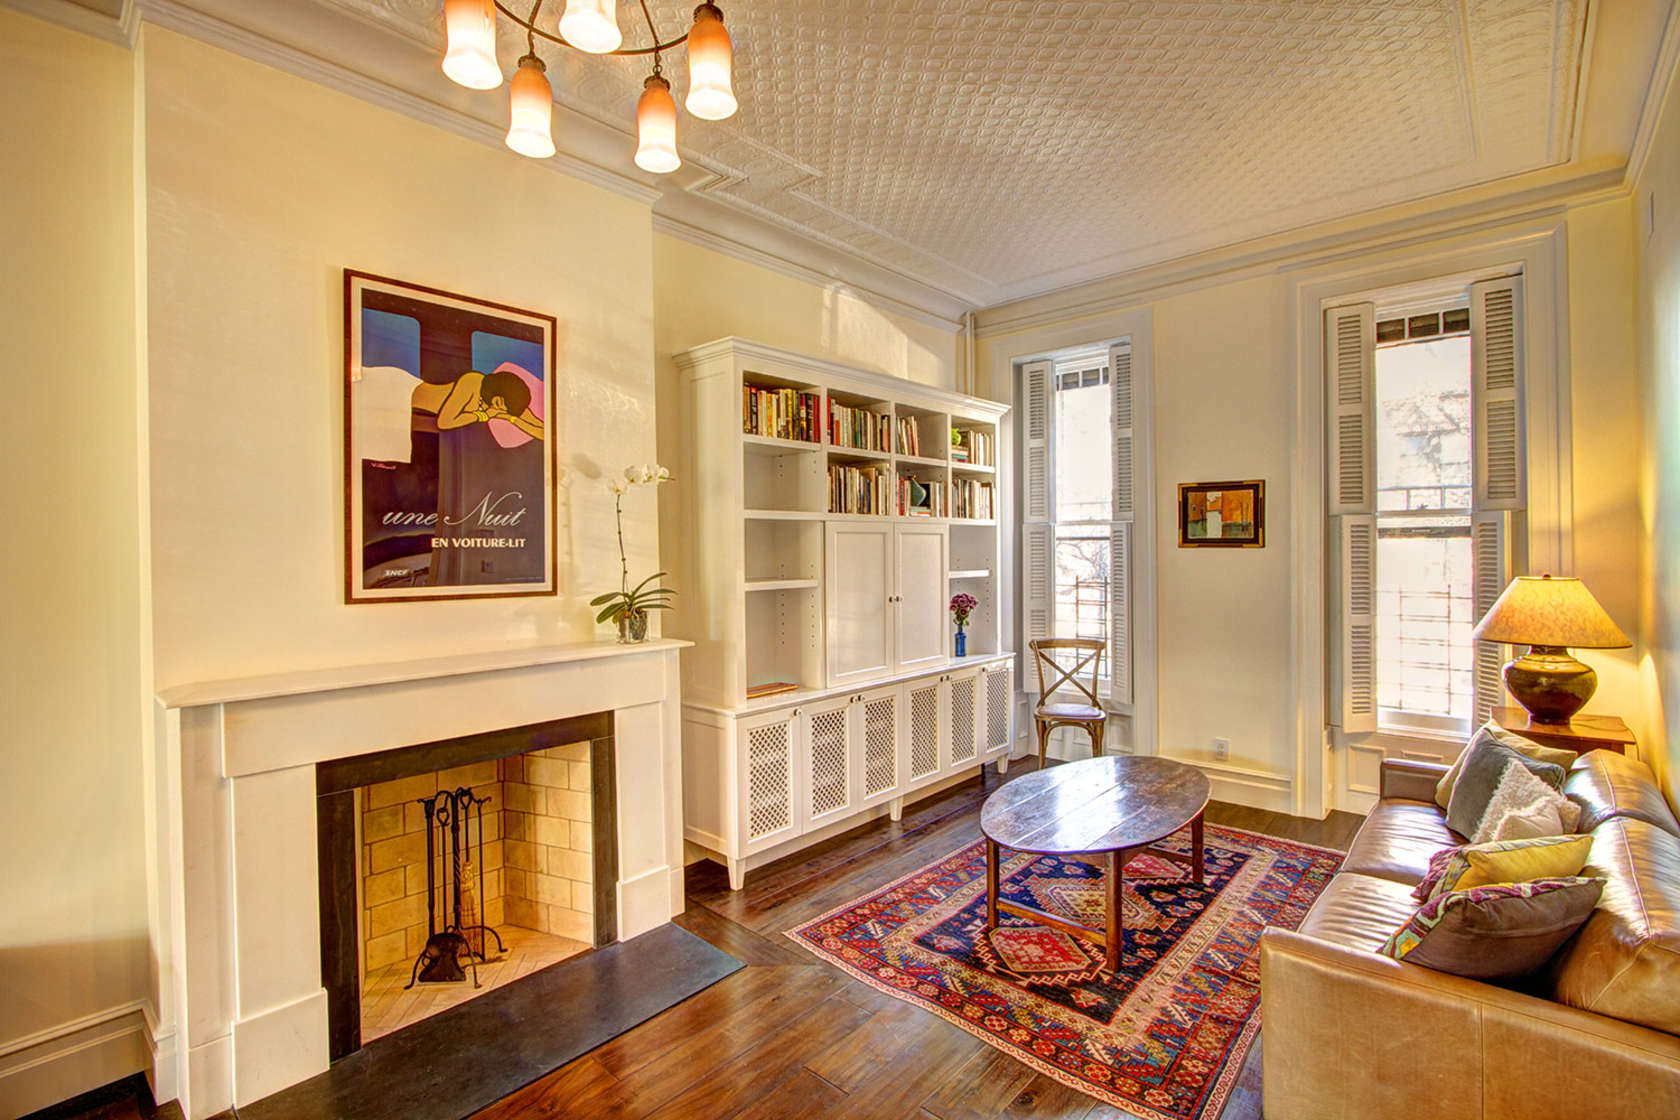 Park slope brownstone renovation by ben herzog adds open for Brownstone living room decorating ideas